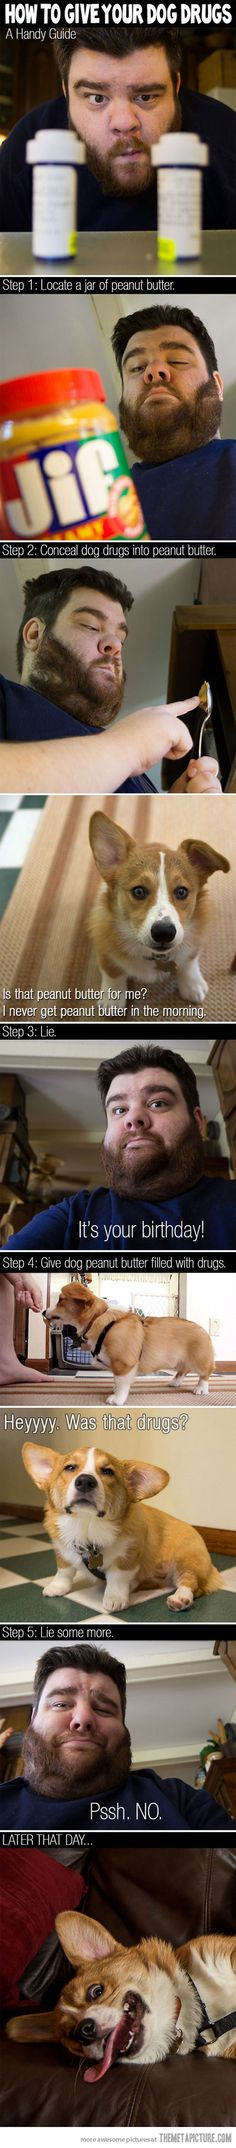 Too funny not to repin. The dog's faces are great